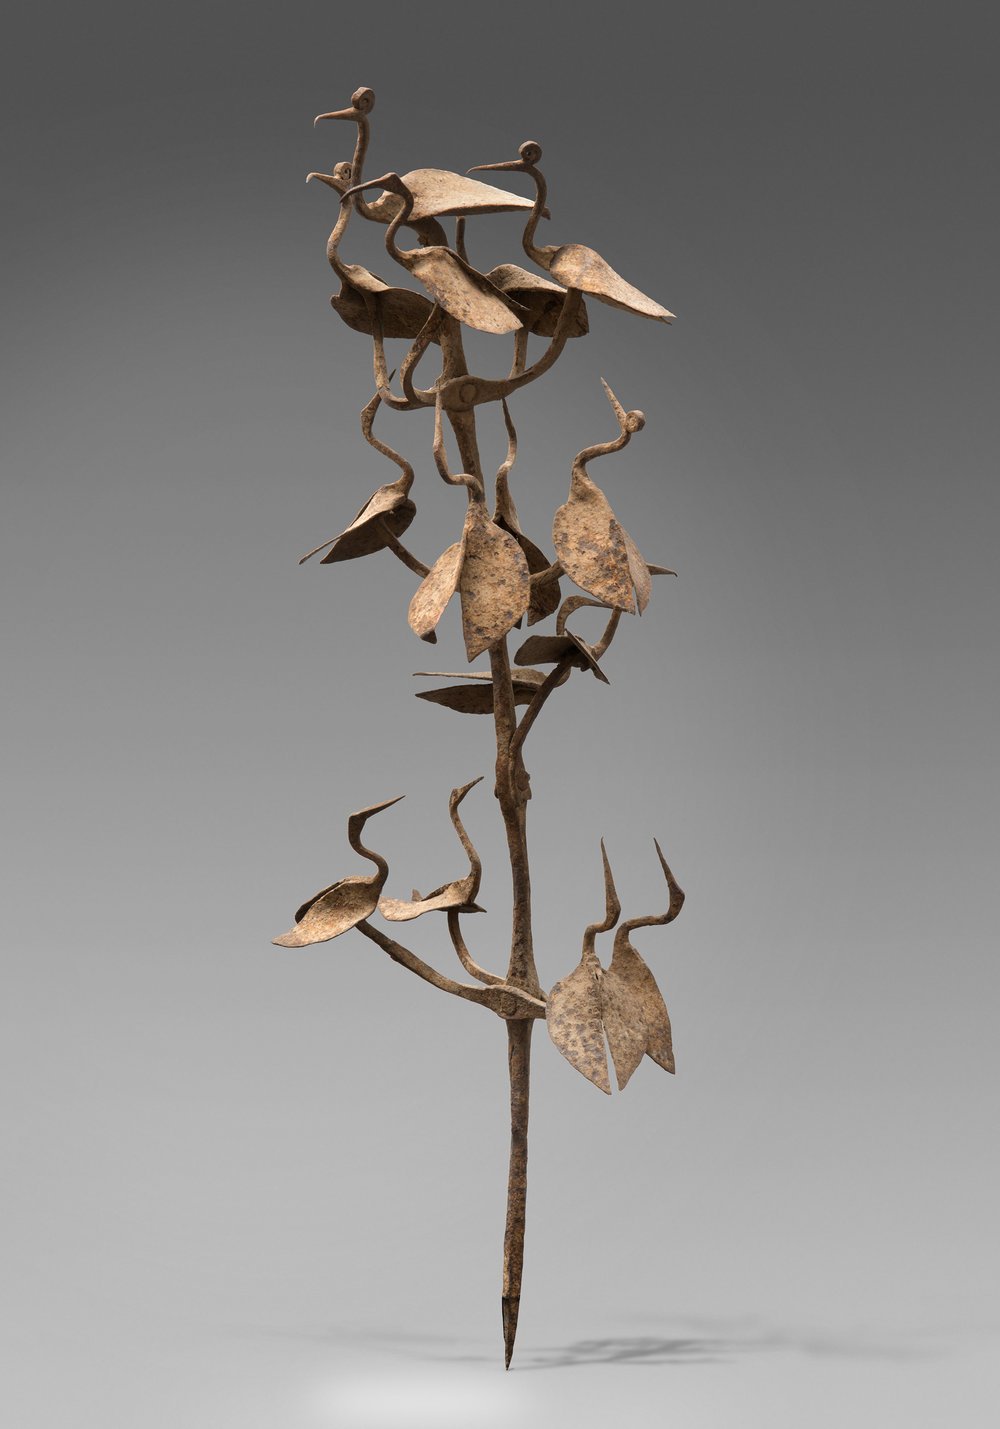 Artist Unknown (Yorùbá peoples, Nigeria), Herbalist's Staff (ọ̀pá Ọ̀sanyìn), 19th century, forged iron, H: 61.5 cm, Diam: 17.5 cm. Collection Mina and Samir Borro. Image © courtesy Mina and Samir Borro